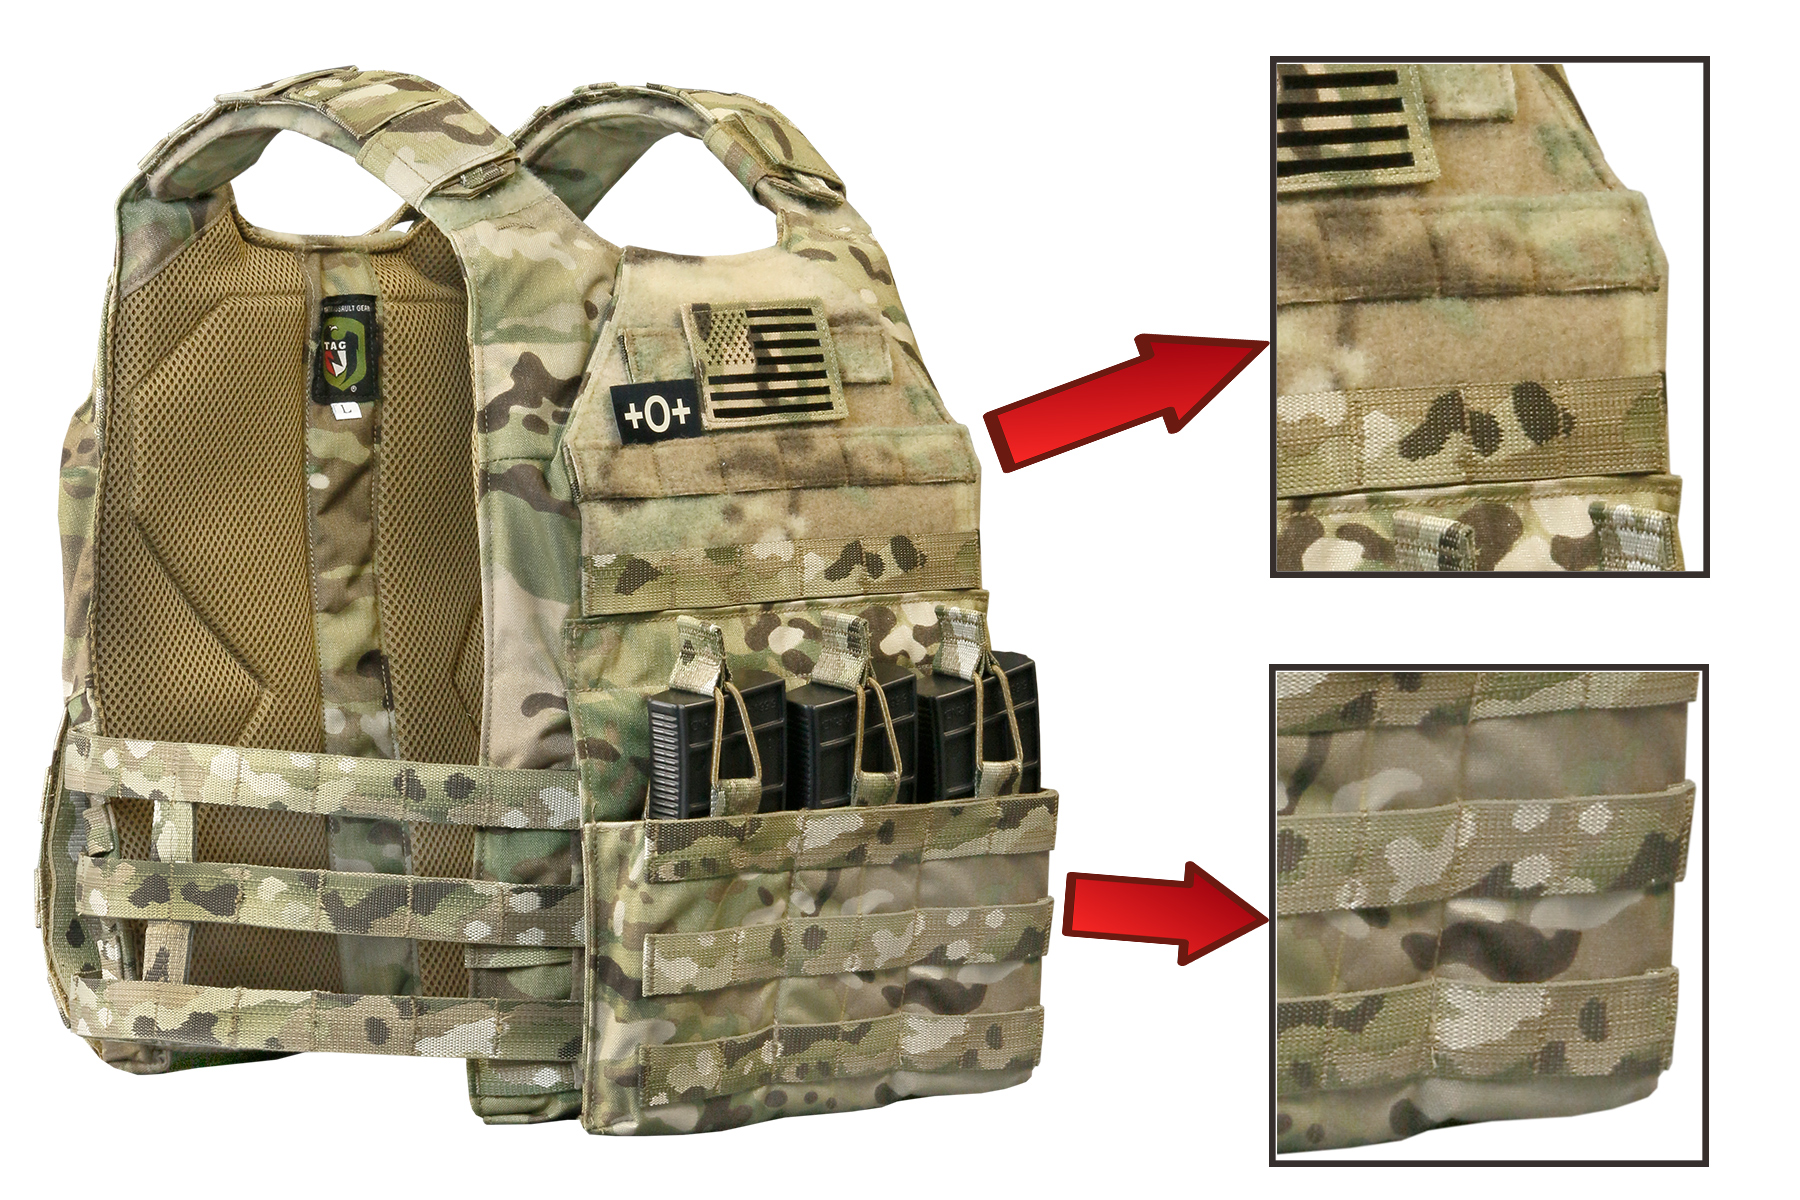 What does MOLLE mean?